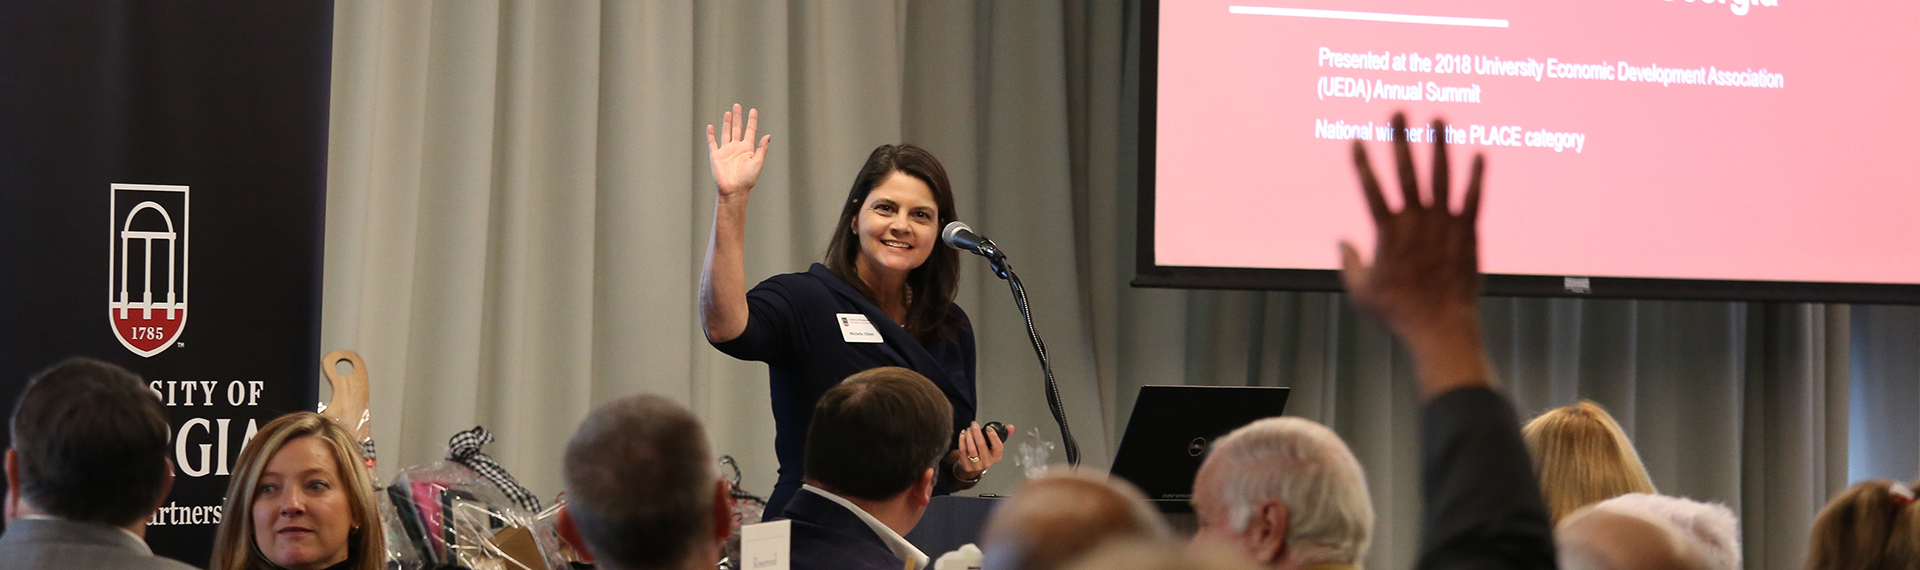 Archway Partnership's Michelle Elliot gives a presentation in front of a crowd in a photo from 2018.